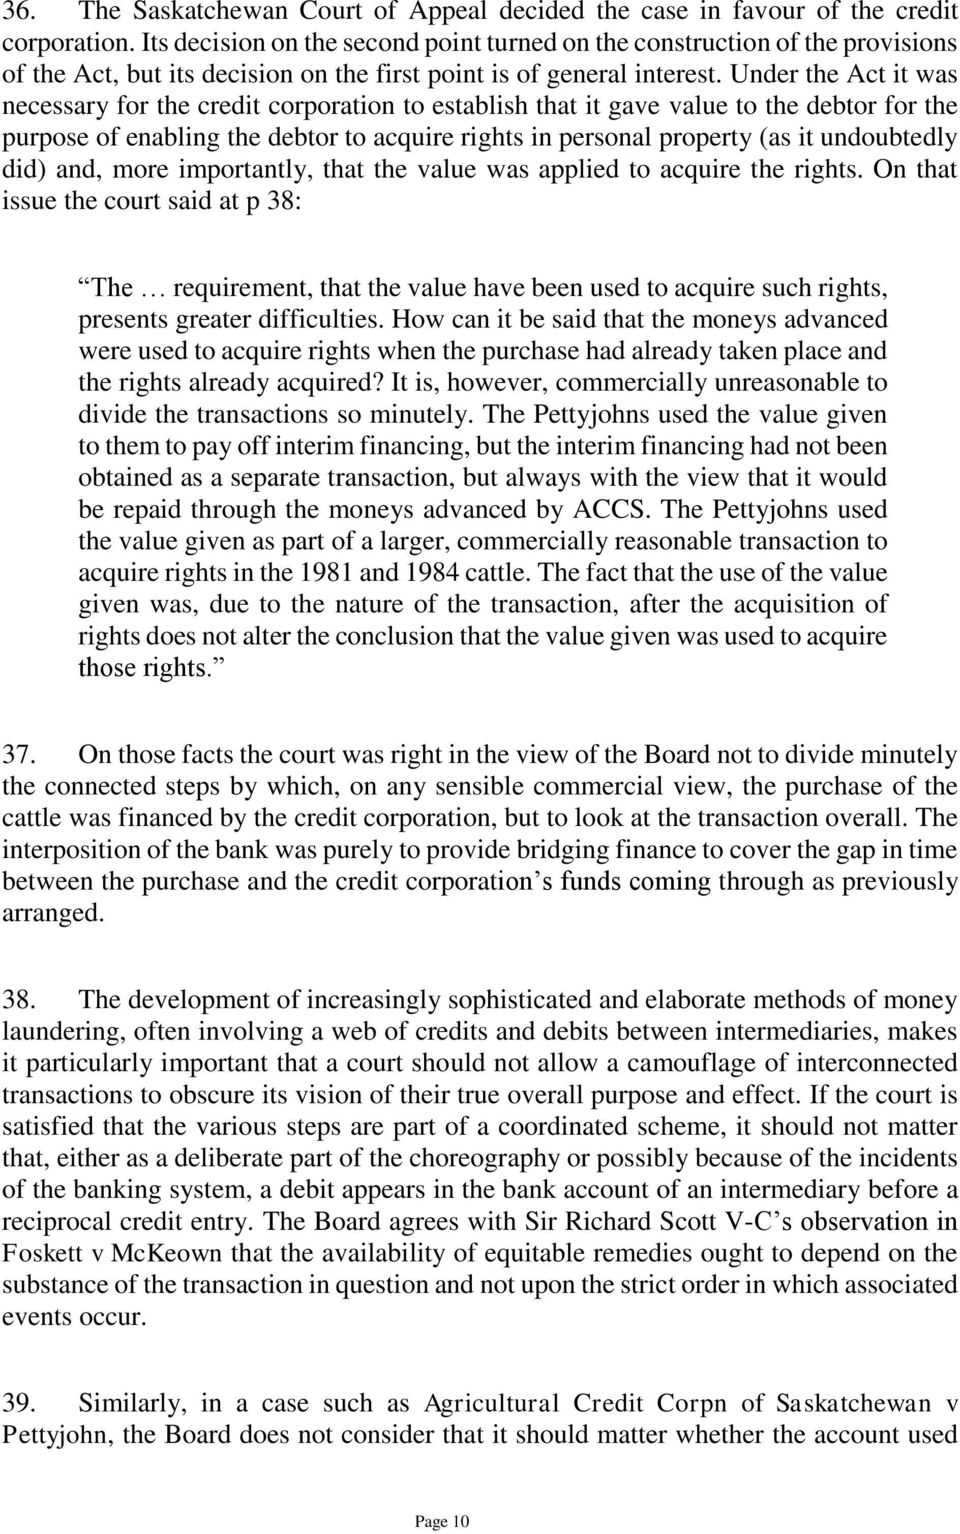 Under the Act it was necessary for the credit corporation to establish that it gave value to the debtor for the purpose of enabling the debtor to acquire rights in personal property (as it